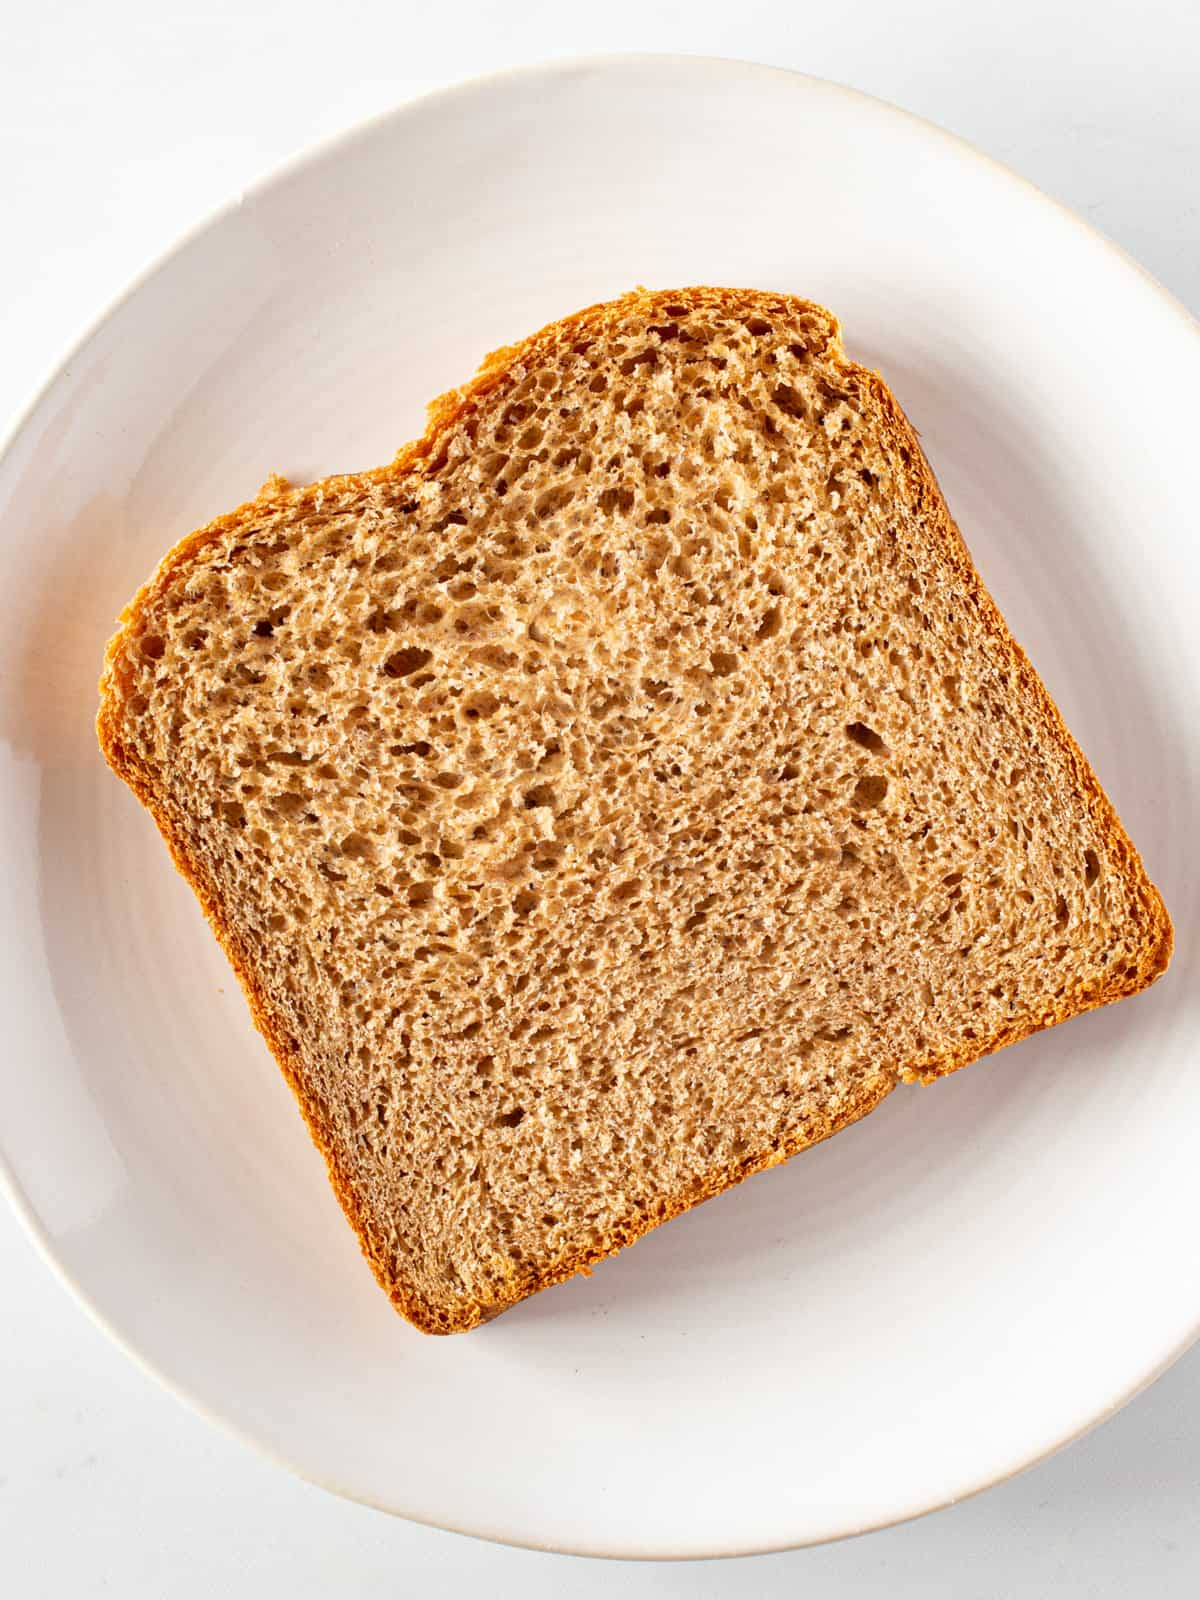 Whole wheat slice of bread on plate.